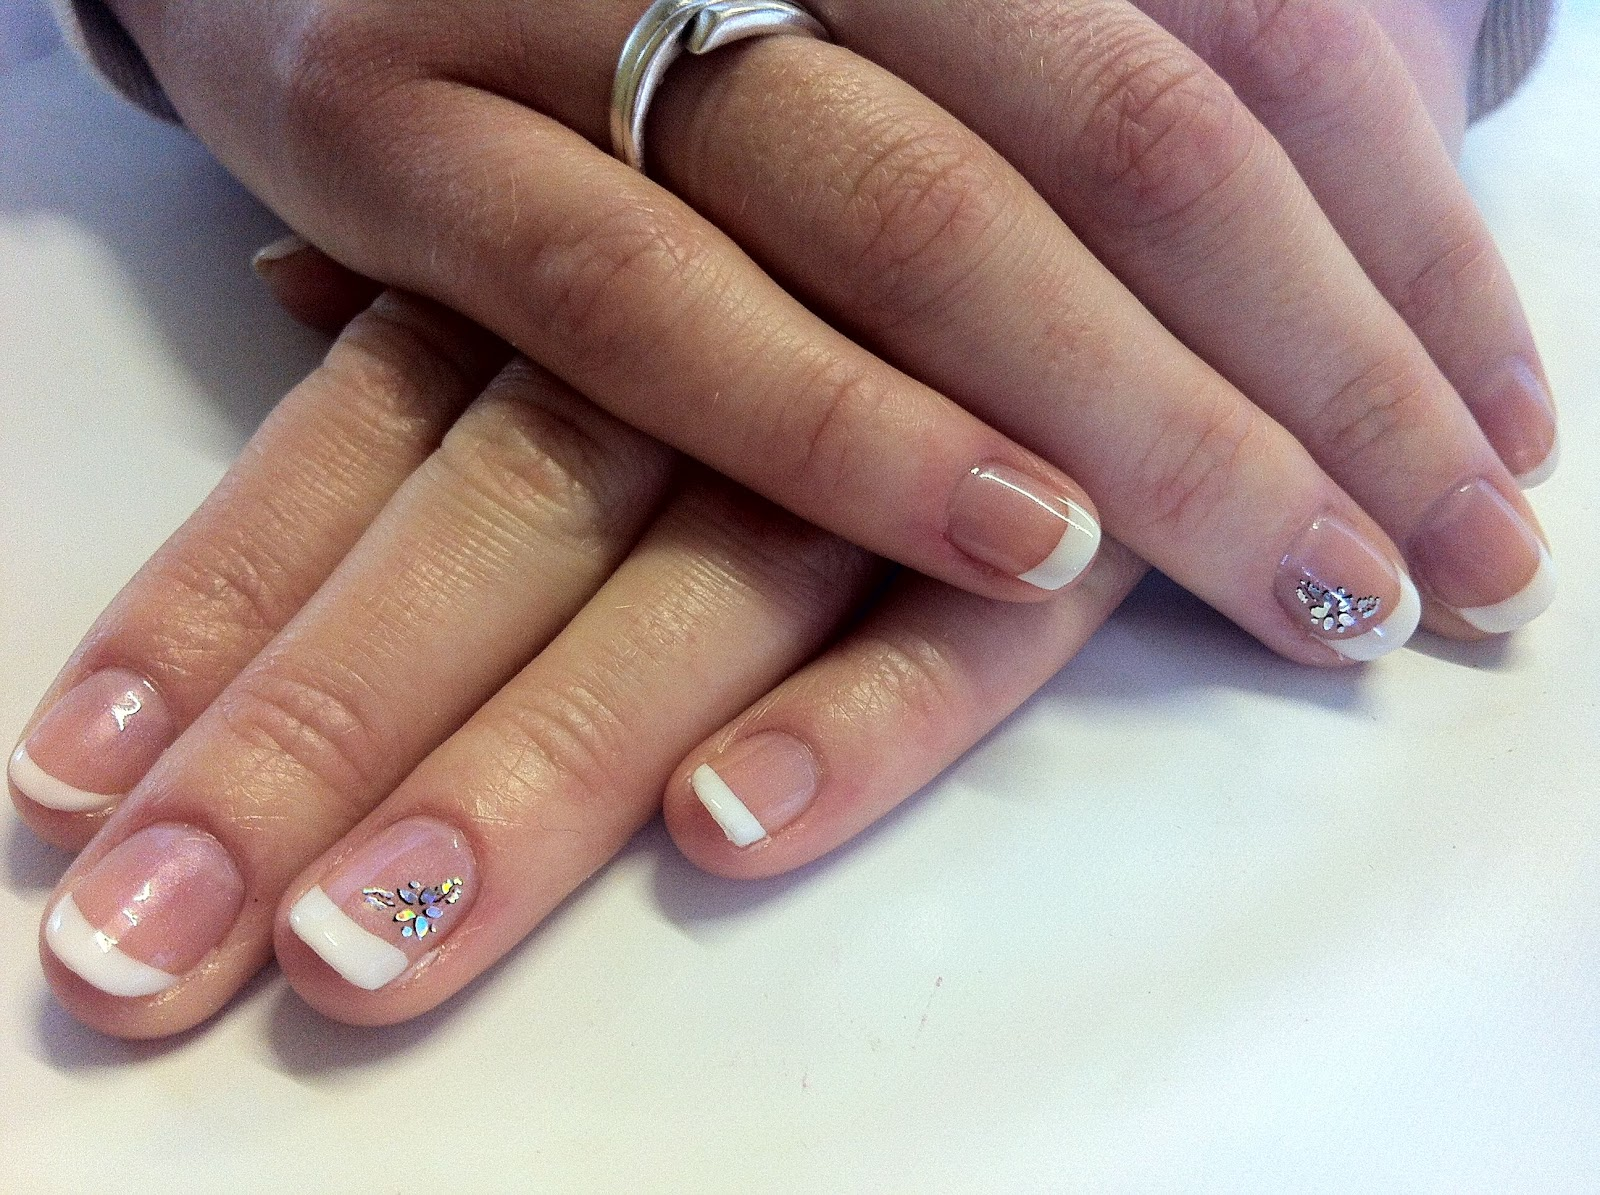 French manicure with nsm17 holographic nail sticker from viva la nails